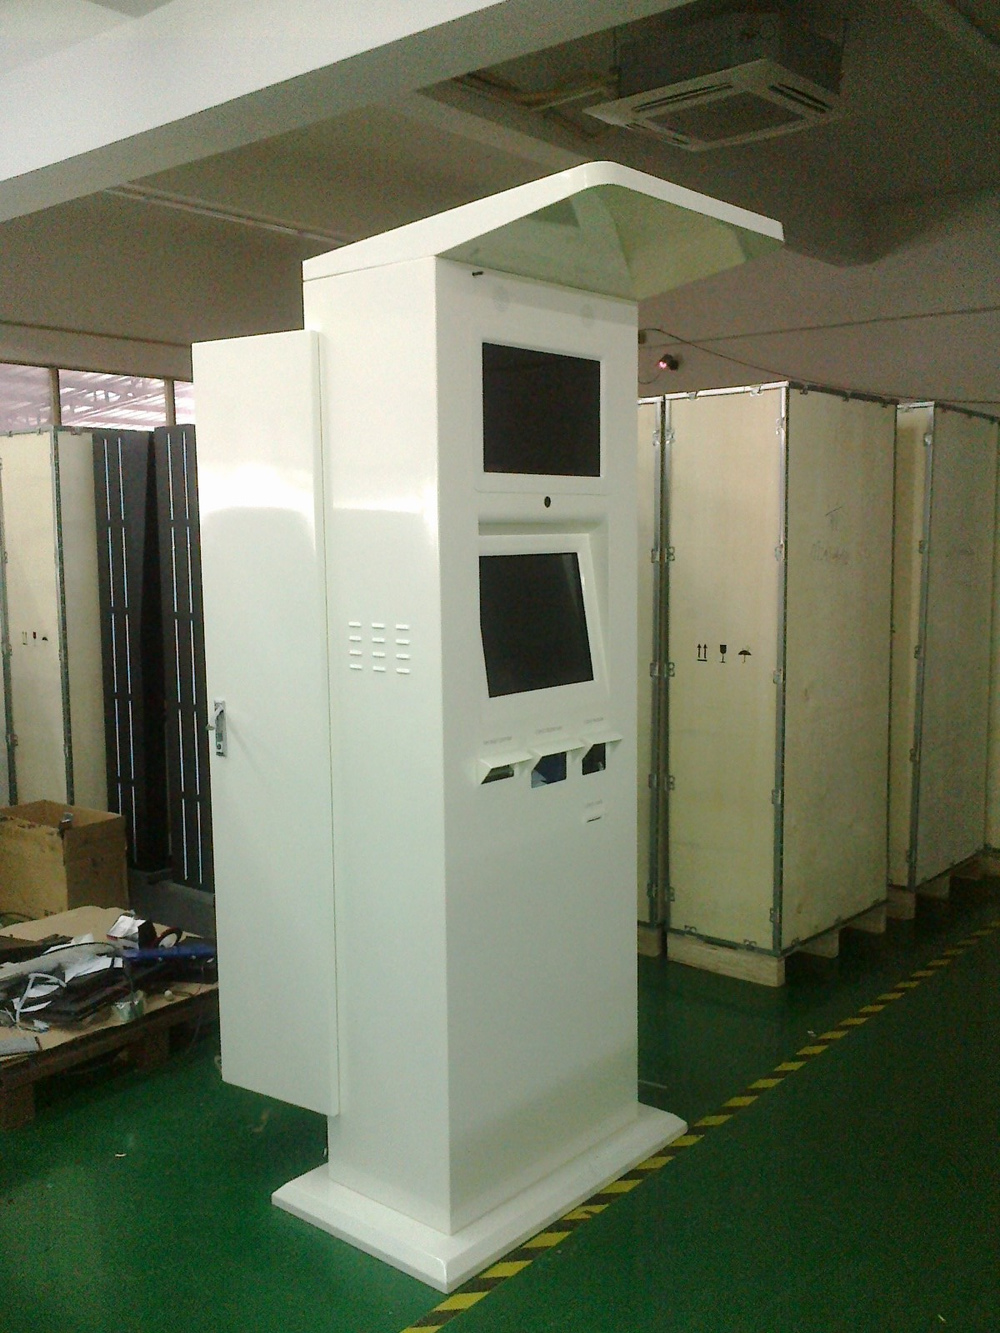 All-in-one cash Payment Kiosk Machine/Bill Payment Kiosk/Card Reader Self Payment Kiosk Terminal